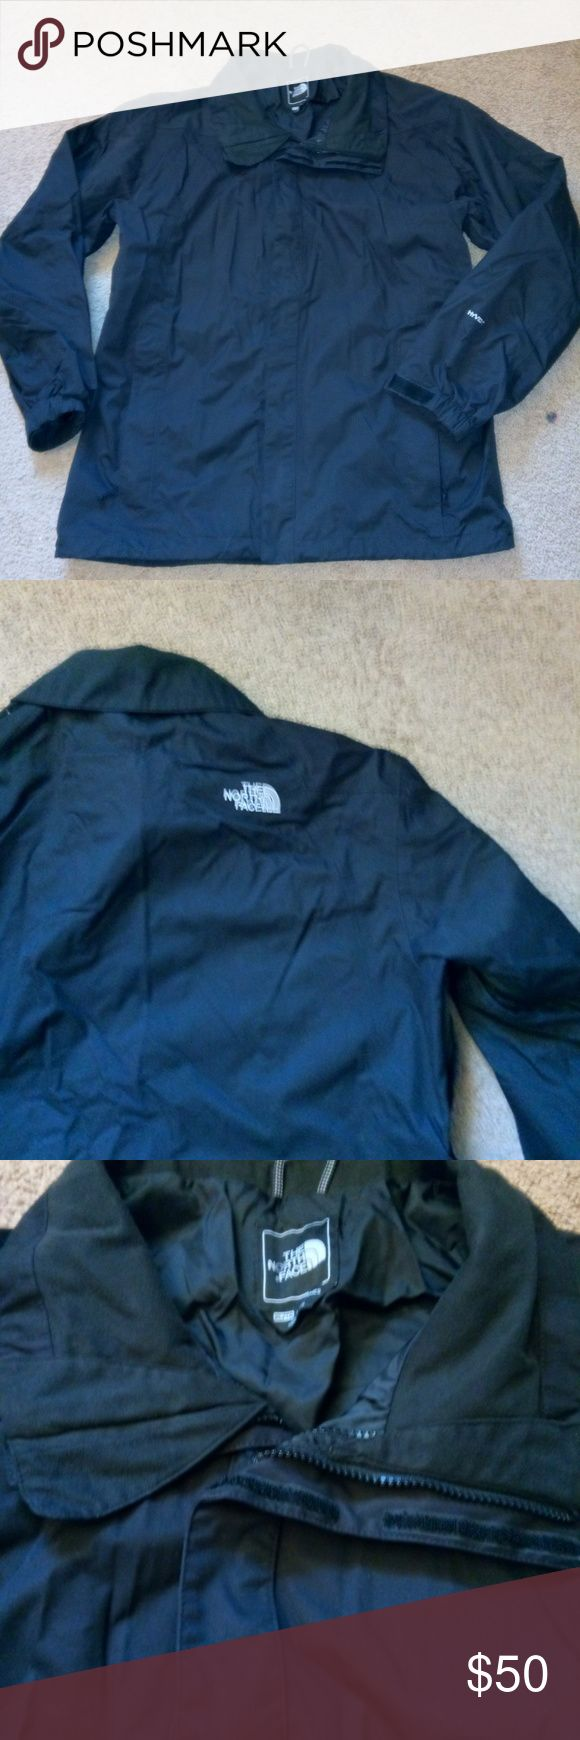 The North face hyvent mens jacket In very good condition, black color The North Face Jackets & Coats Ski & Snowboard